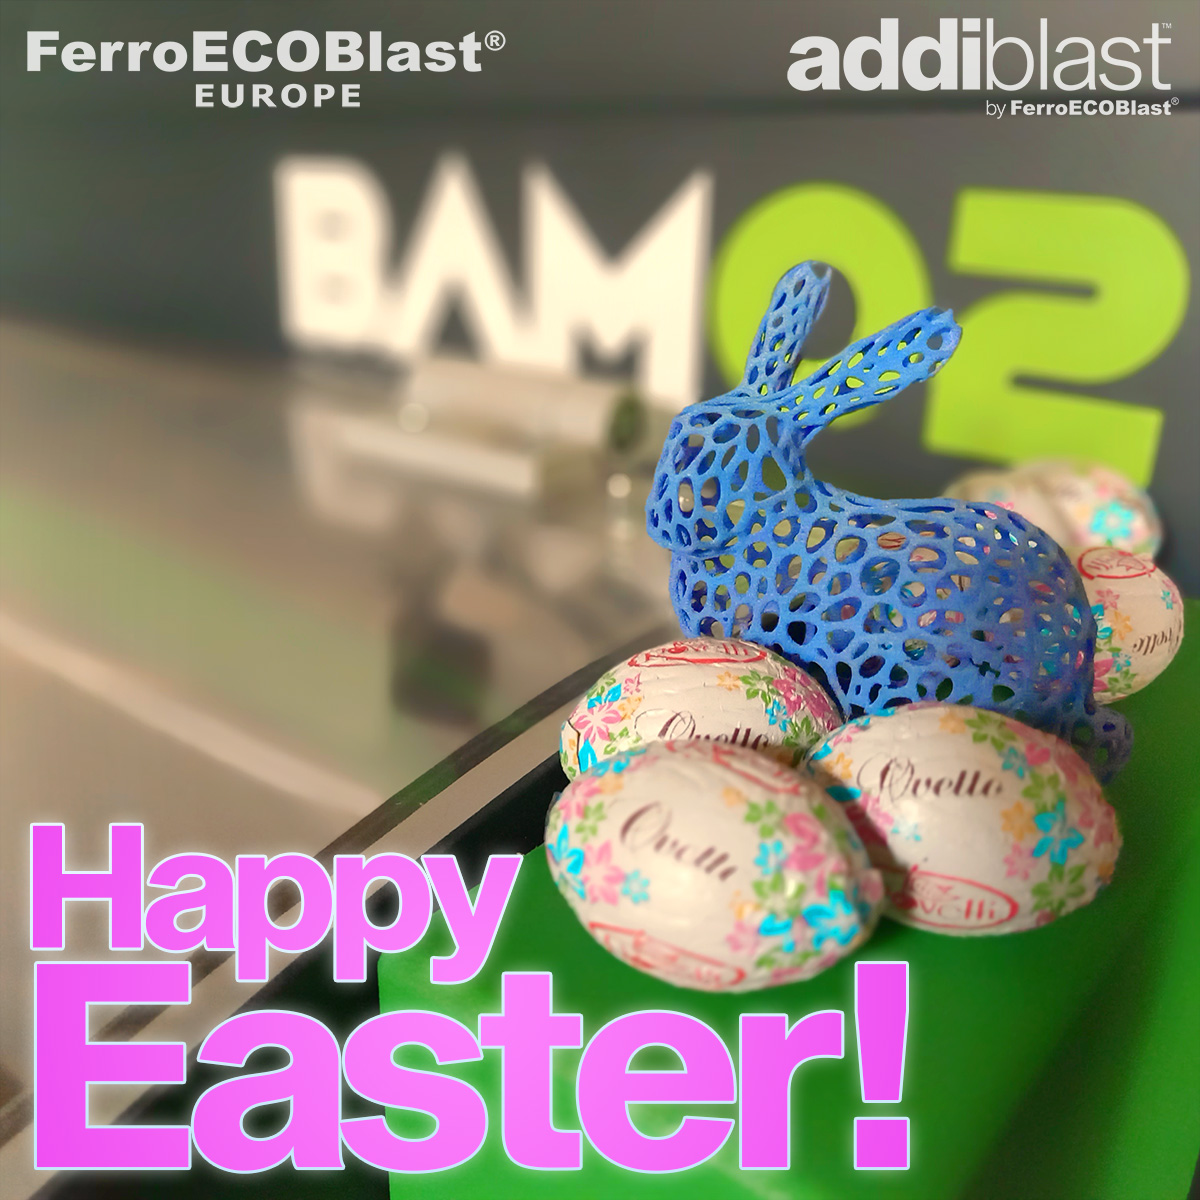 <h2>Happy <strong>Easter!</strong></h2>